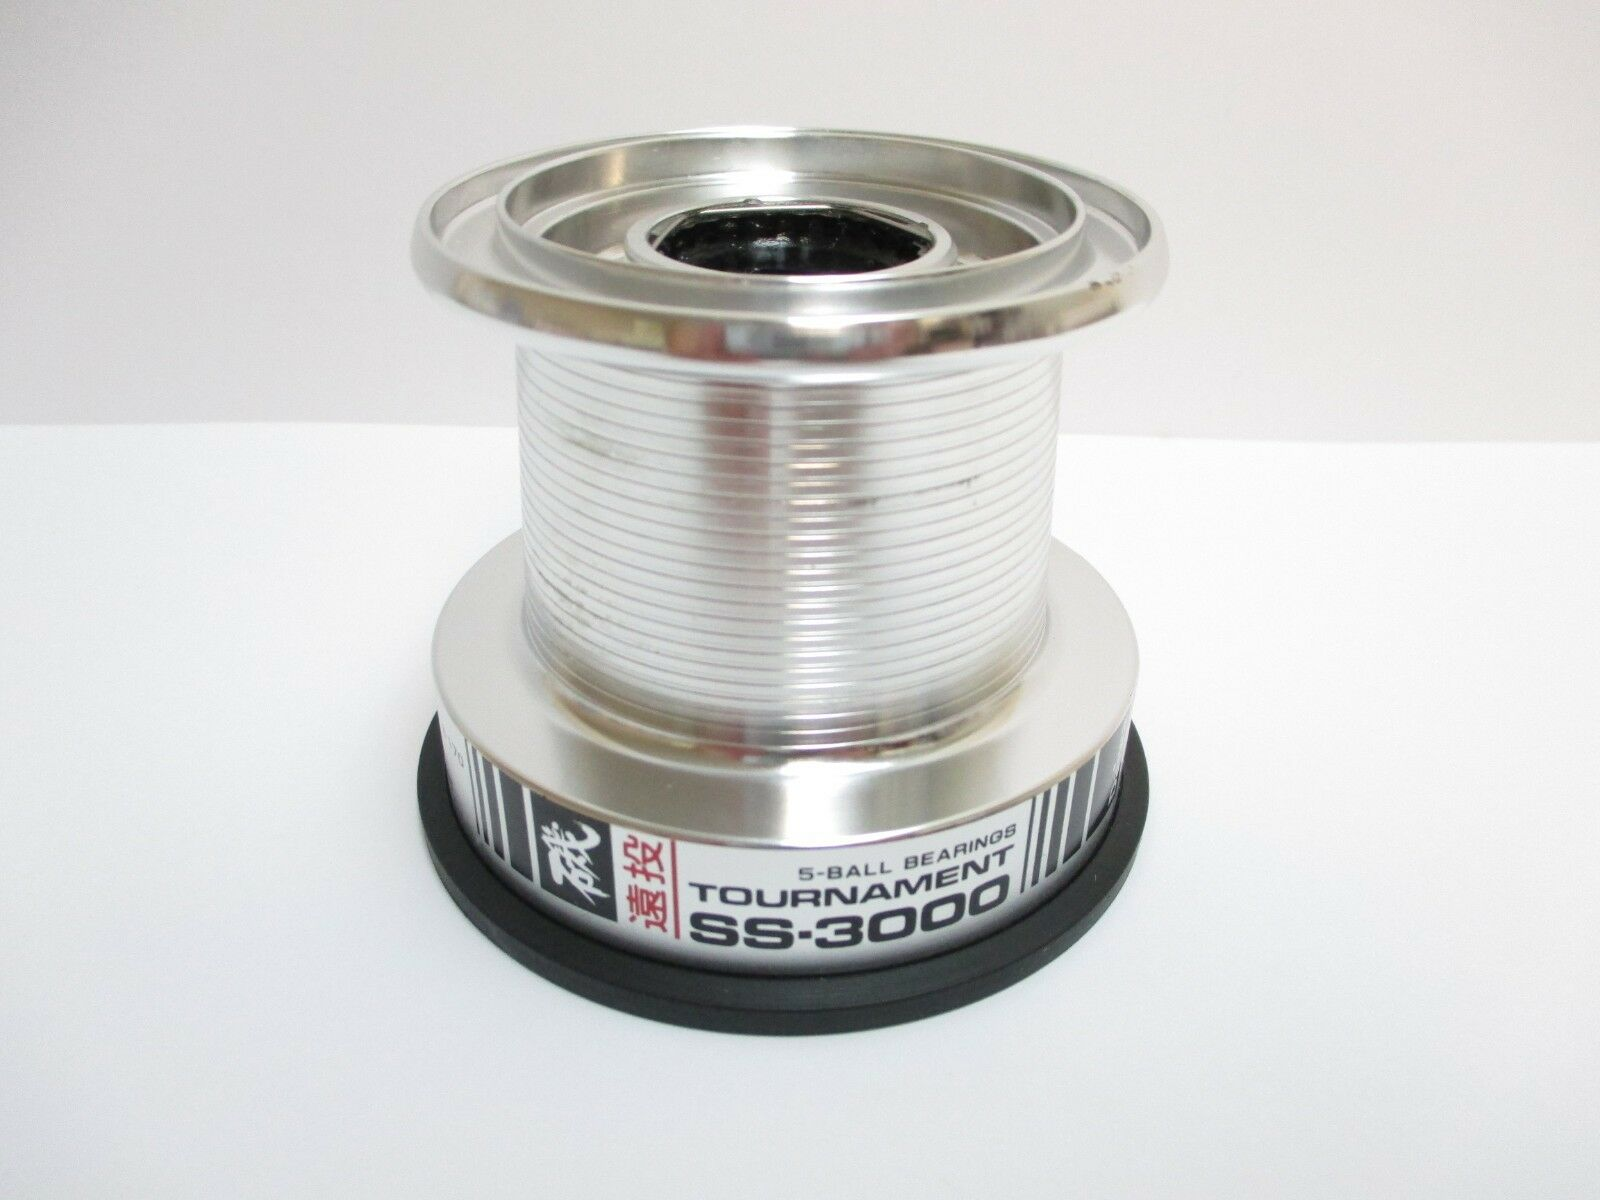 DAIWA REEL PART - E33-5001 Tournament SS-3000 - Spool Assembly -Imperfect  A